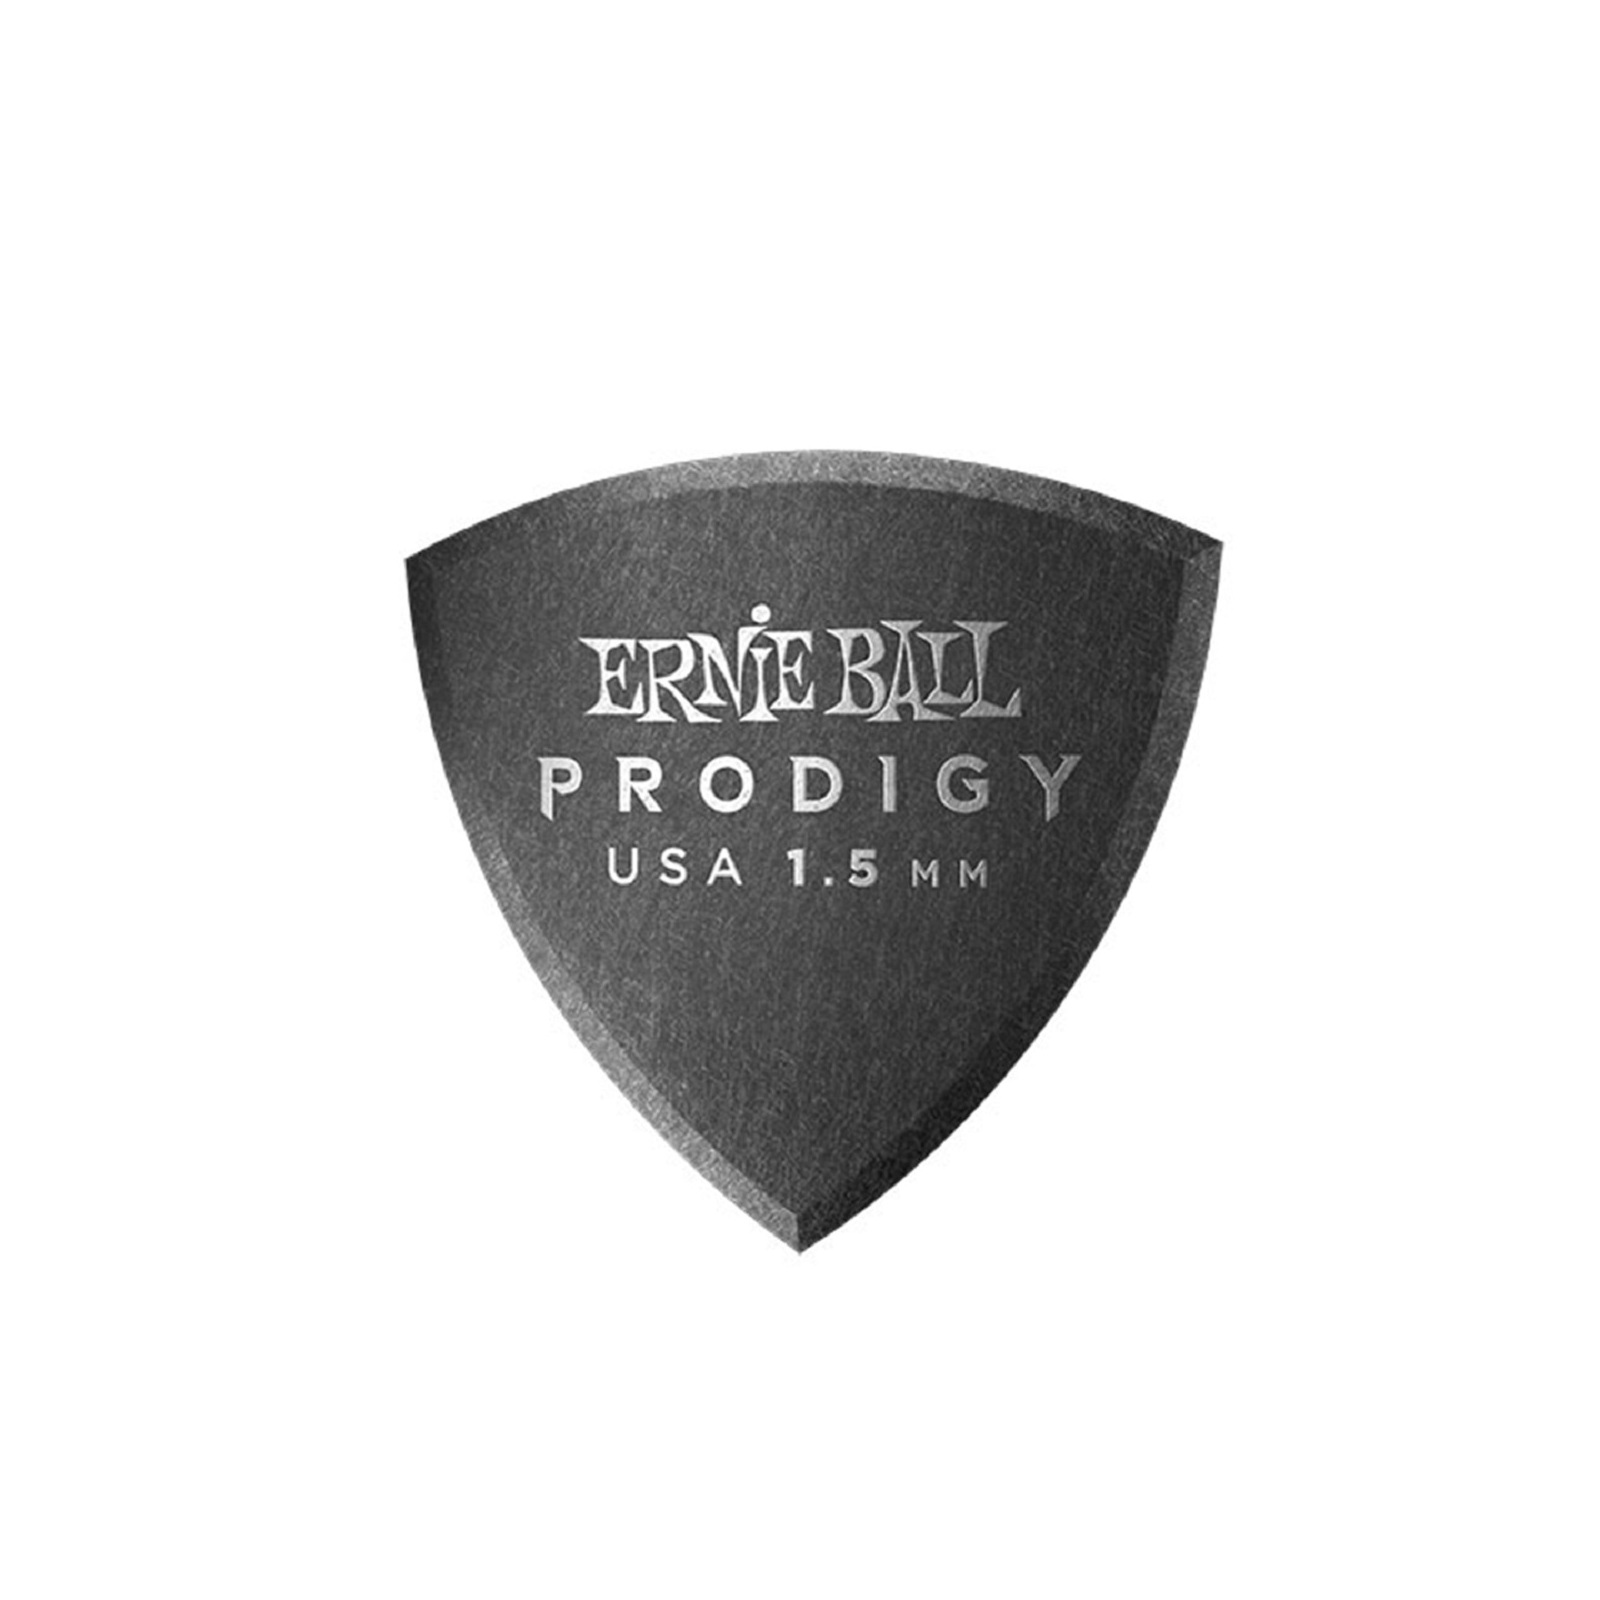 ERNIE BALL PICKS - PRODIGY - SHIELD - 1.5 MM BLK 6PK E9331